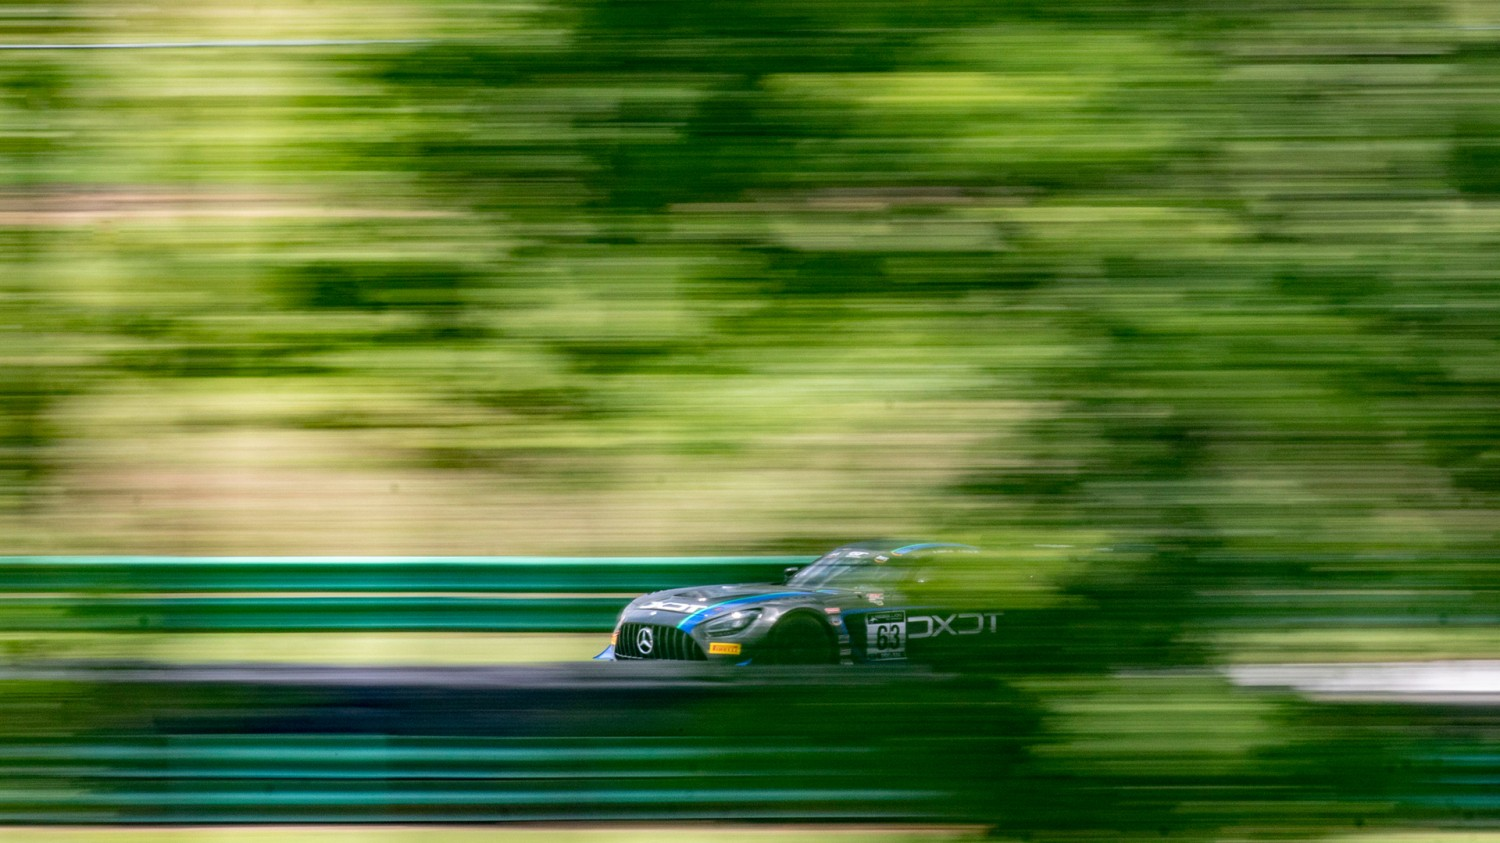 2021 Calendar Update Includes Earlier VIR Appearance, Final Planning Stages of CTMP Replacement